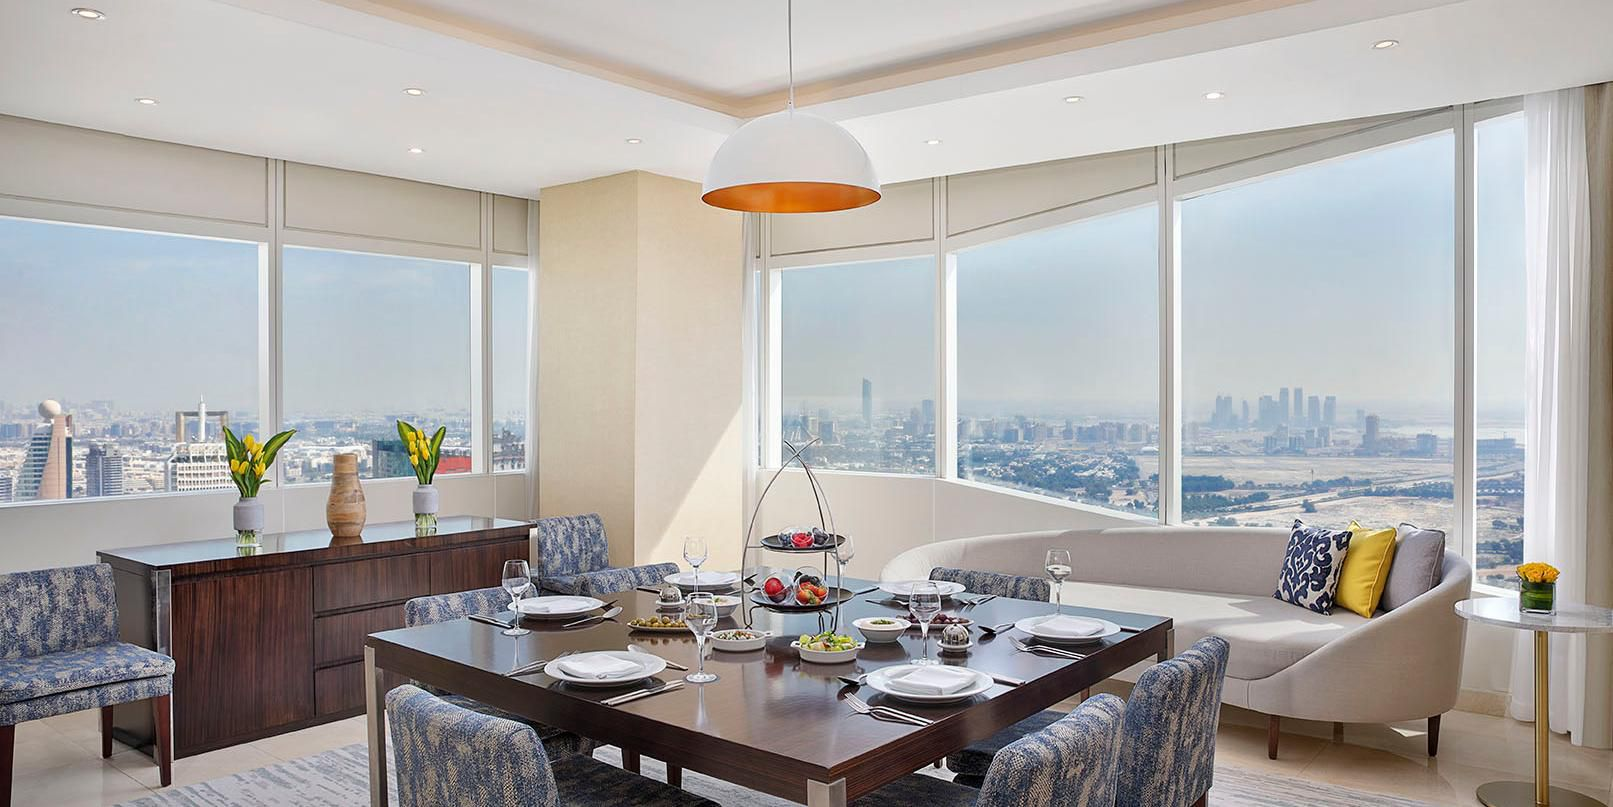 Ambassador Suite dining area, with views of Shiekh Zayed Road